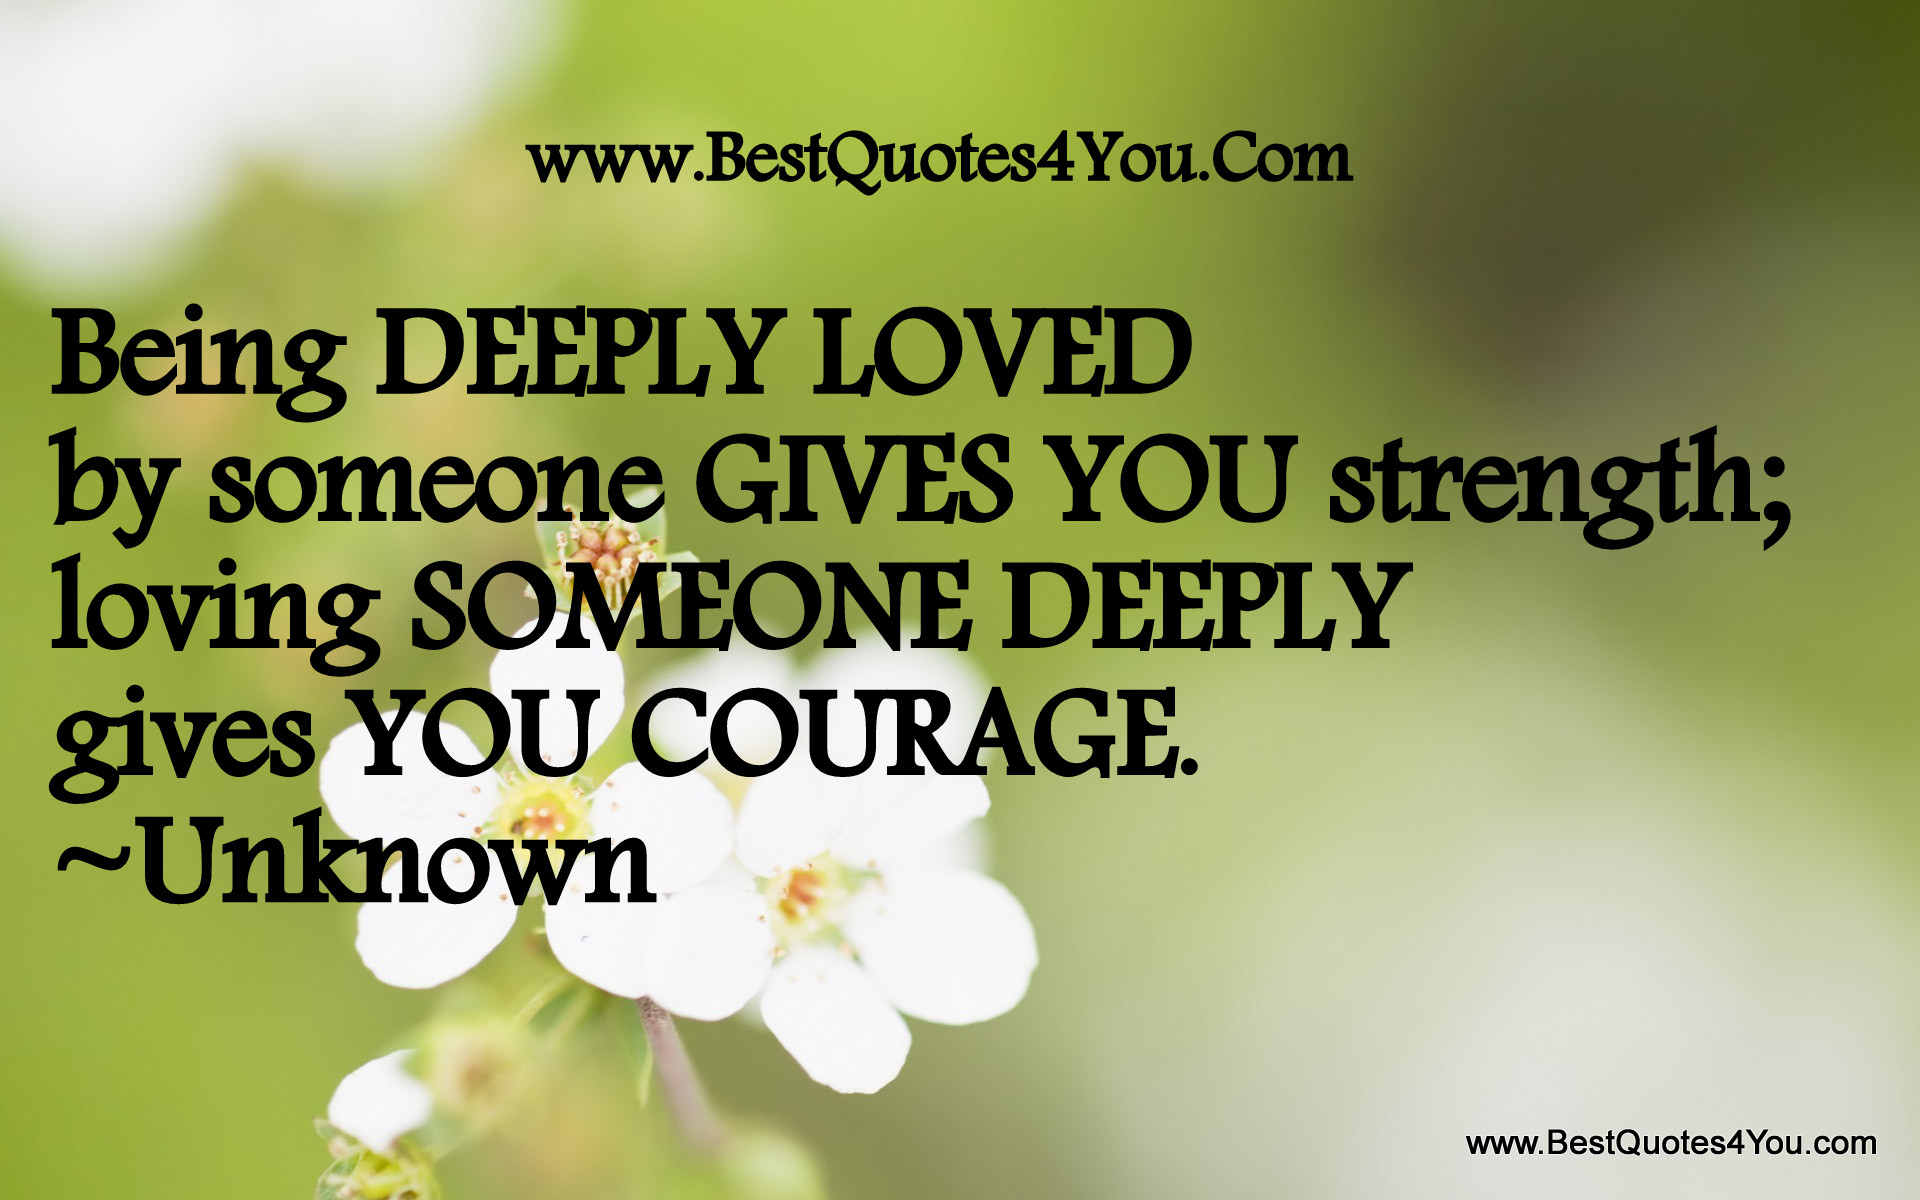 Being Deeply Loved By Someone Gives You Strength; Loving Someone Deeply Gives You Courage